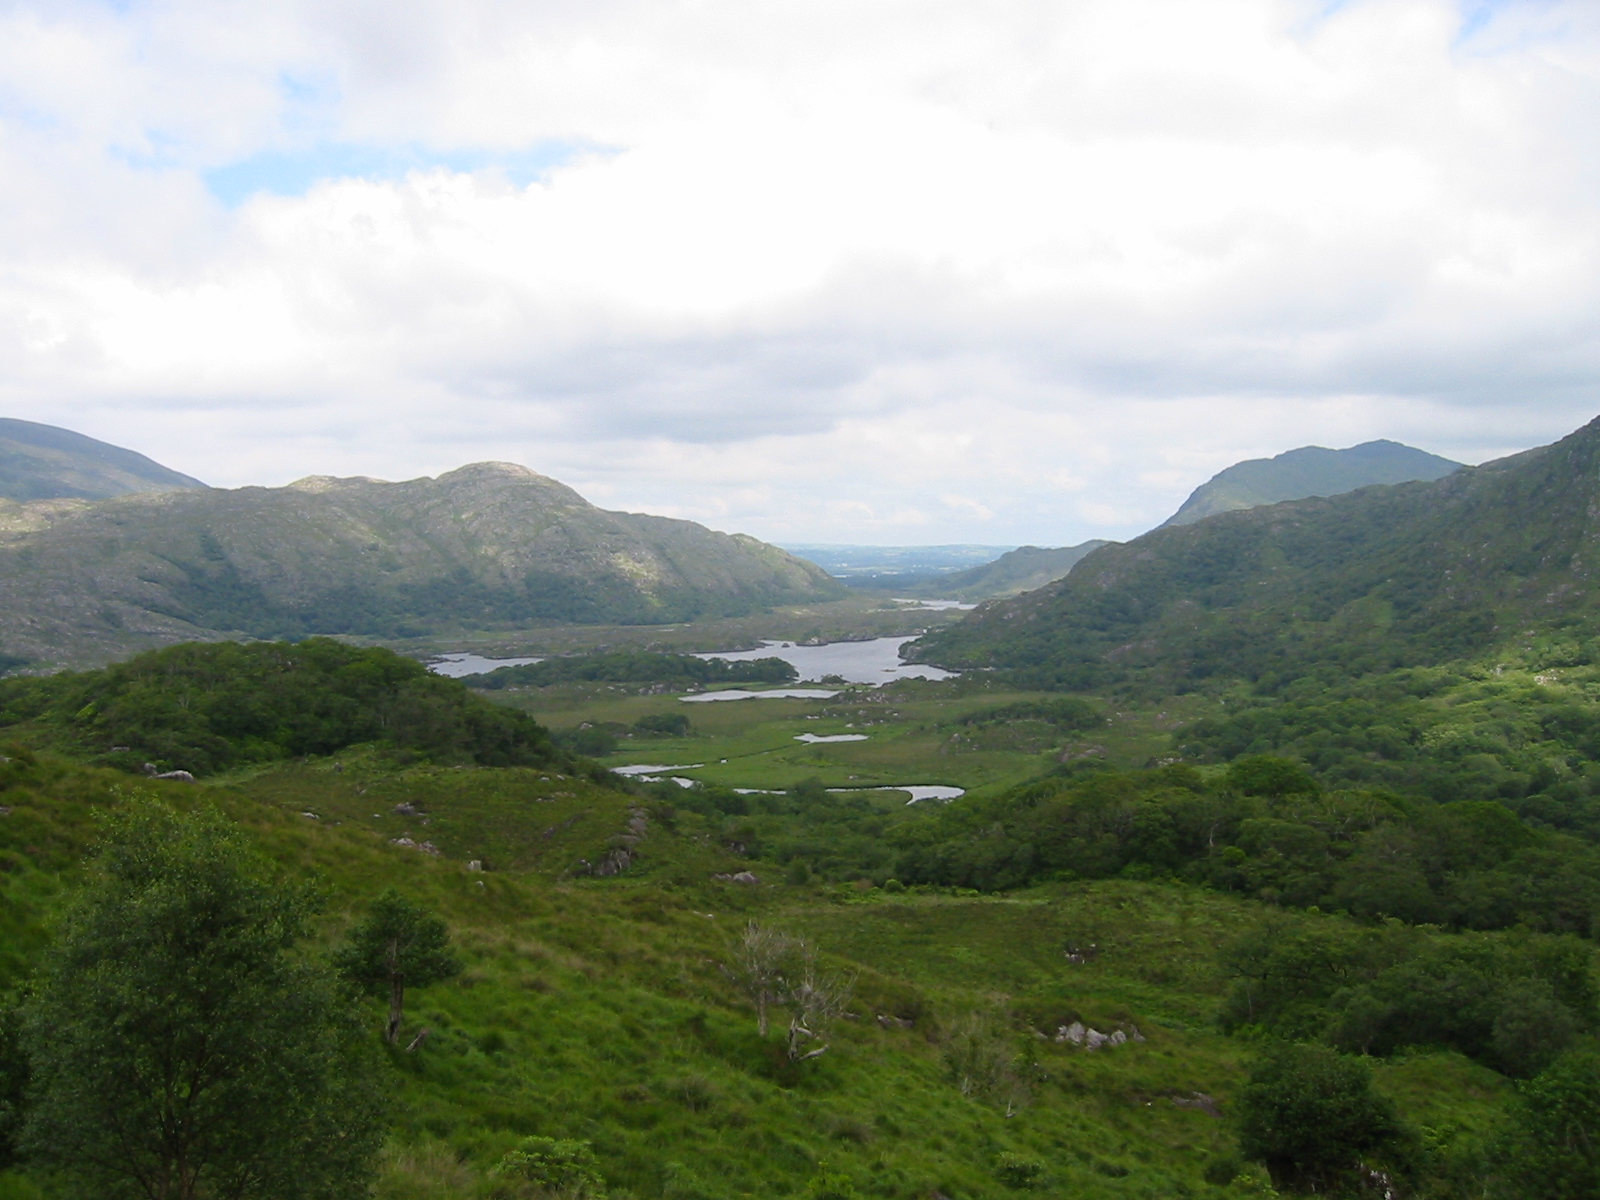 http://upload.wikimedia.org/wikipedia/commons/9/9c/Lakes_of_Killarney.JPG